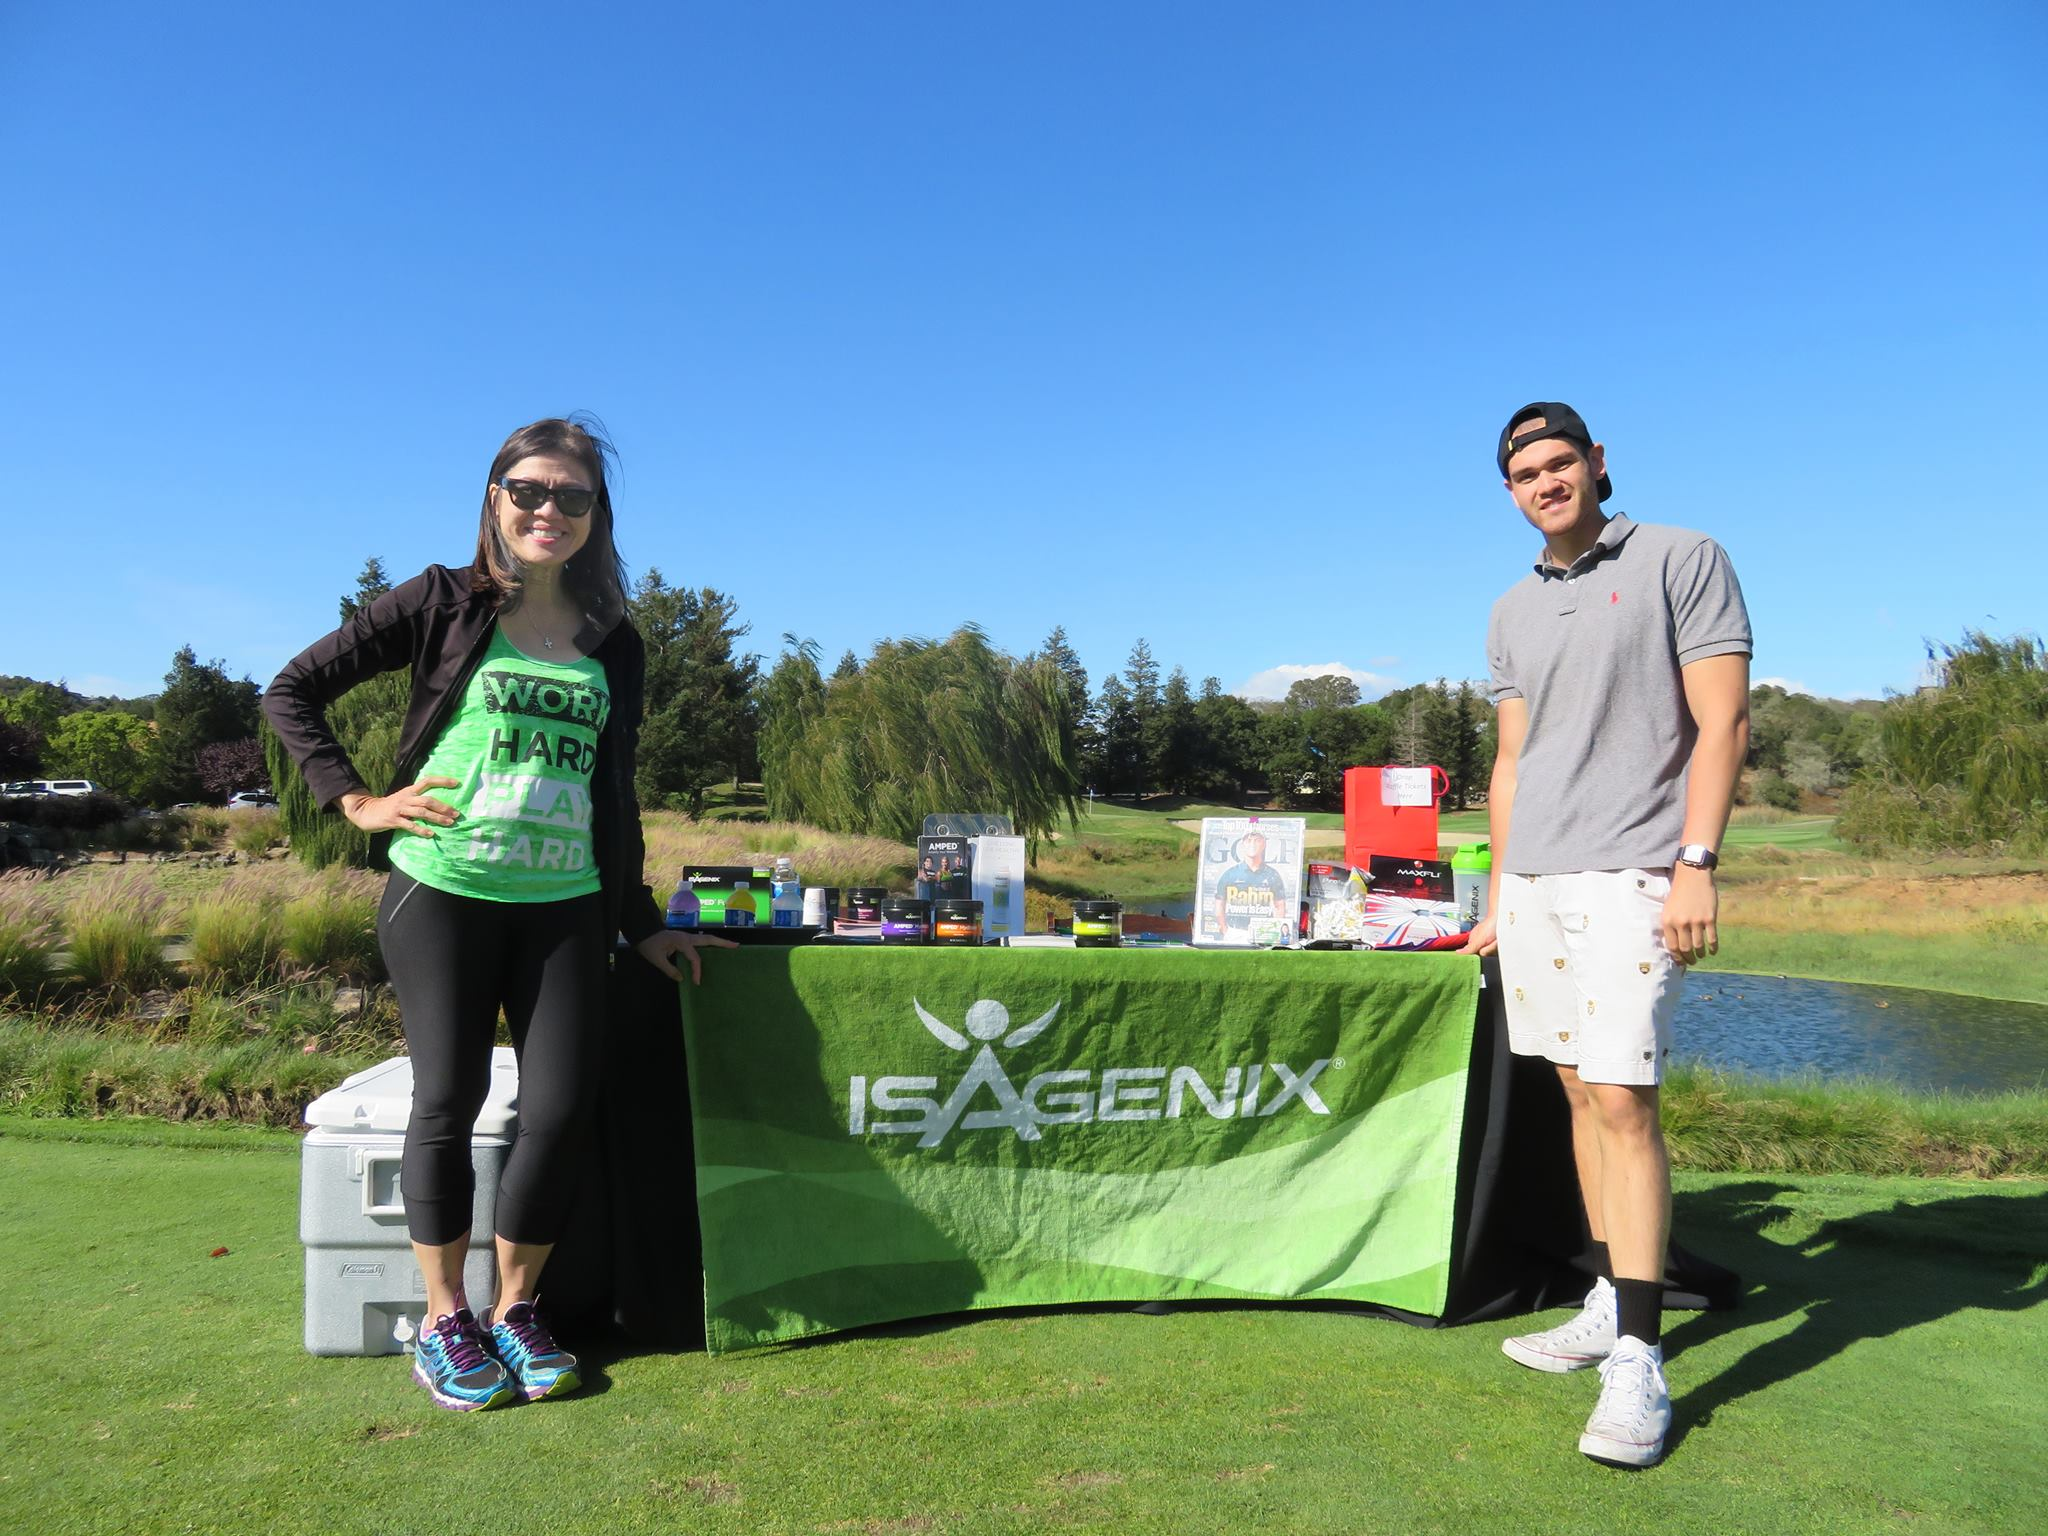 Imee Birkett Novato Chamber Golf Activities Best TOurnamenrt too many